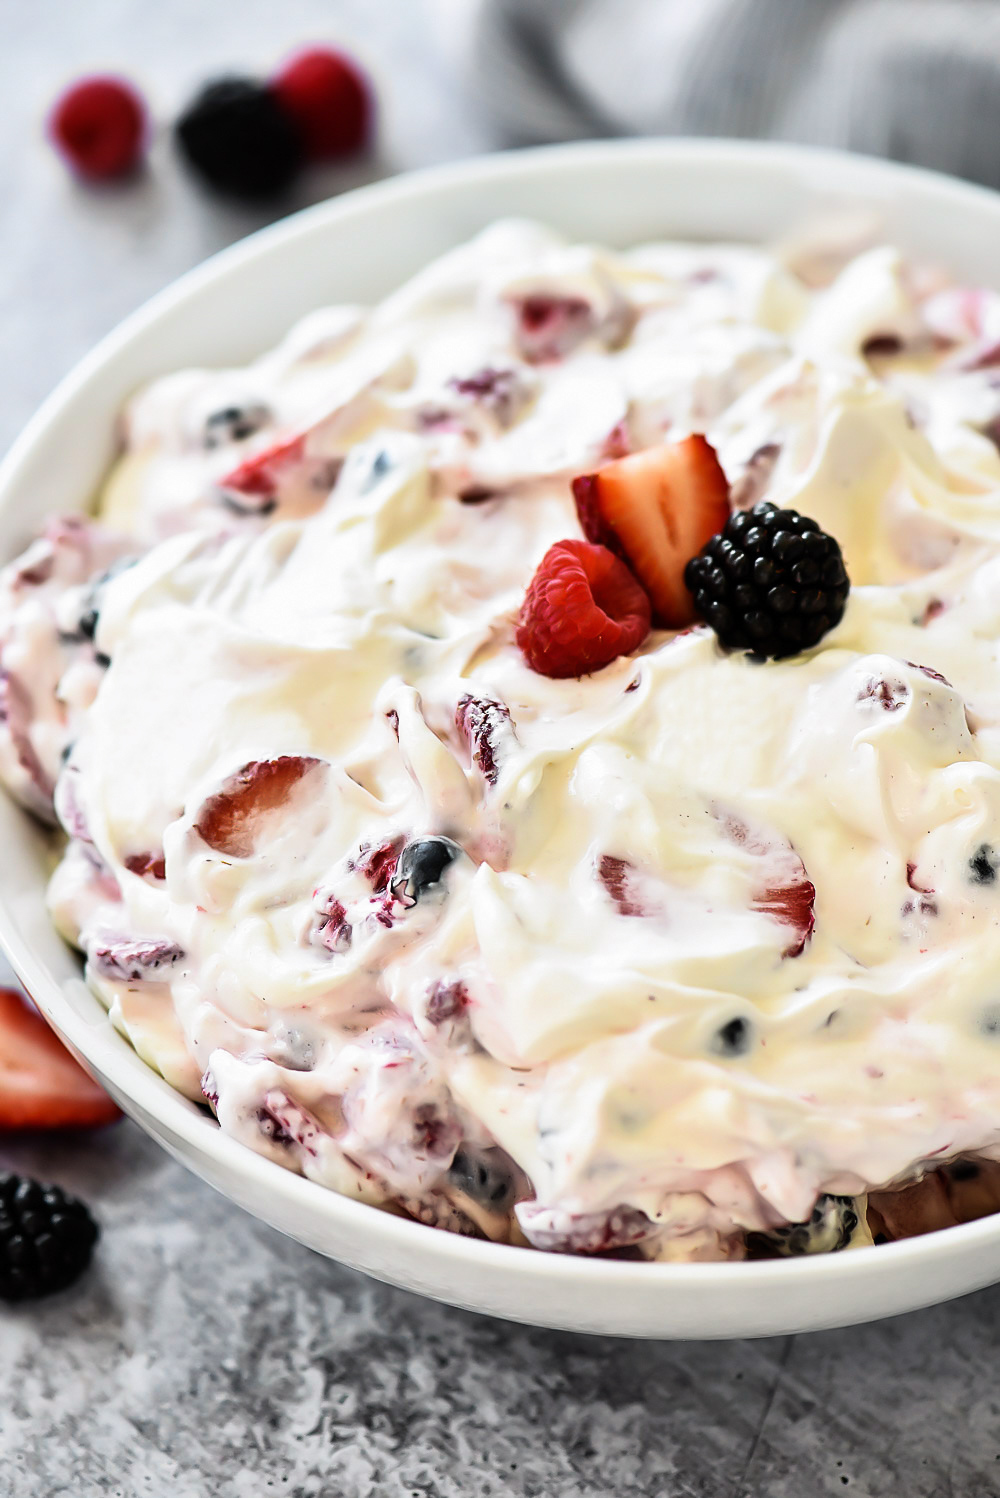 Sliced strawberries, blueberries, blackberries and raspberries covered in a sweet cream cheese fluff. Life-in-the-Lofthouse.com